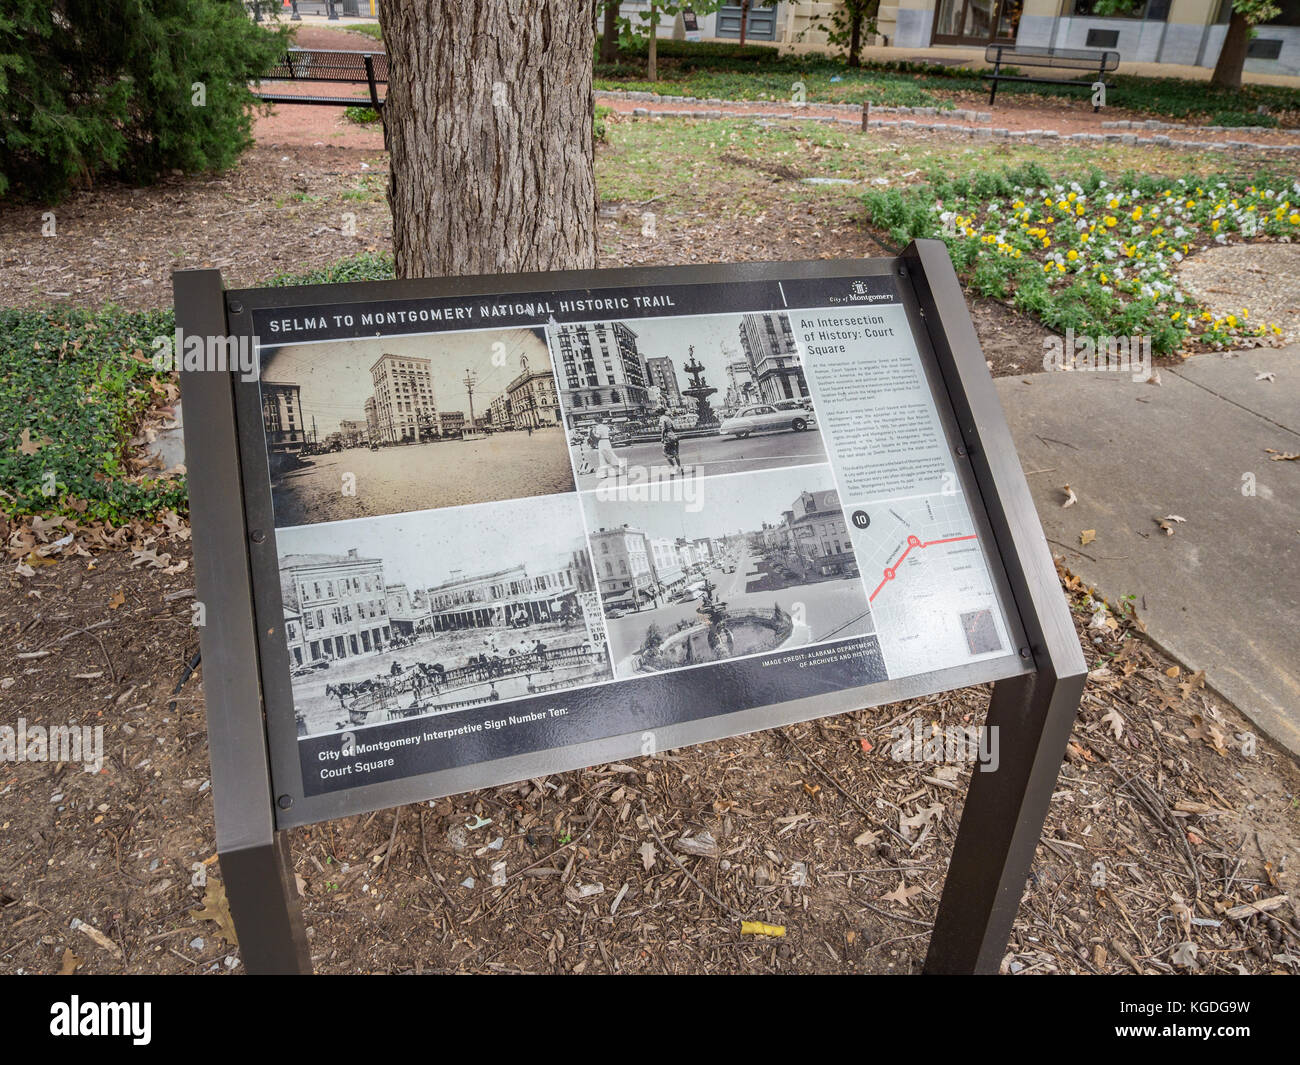 Interpretive sign at Court Square, Montgomery Alabama, USA, showing the Selma to Montgomery National Historic Trail - Stock Image